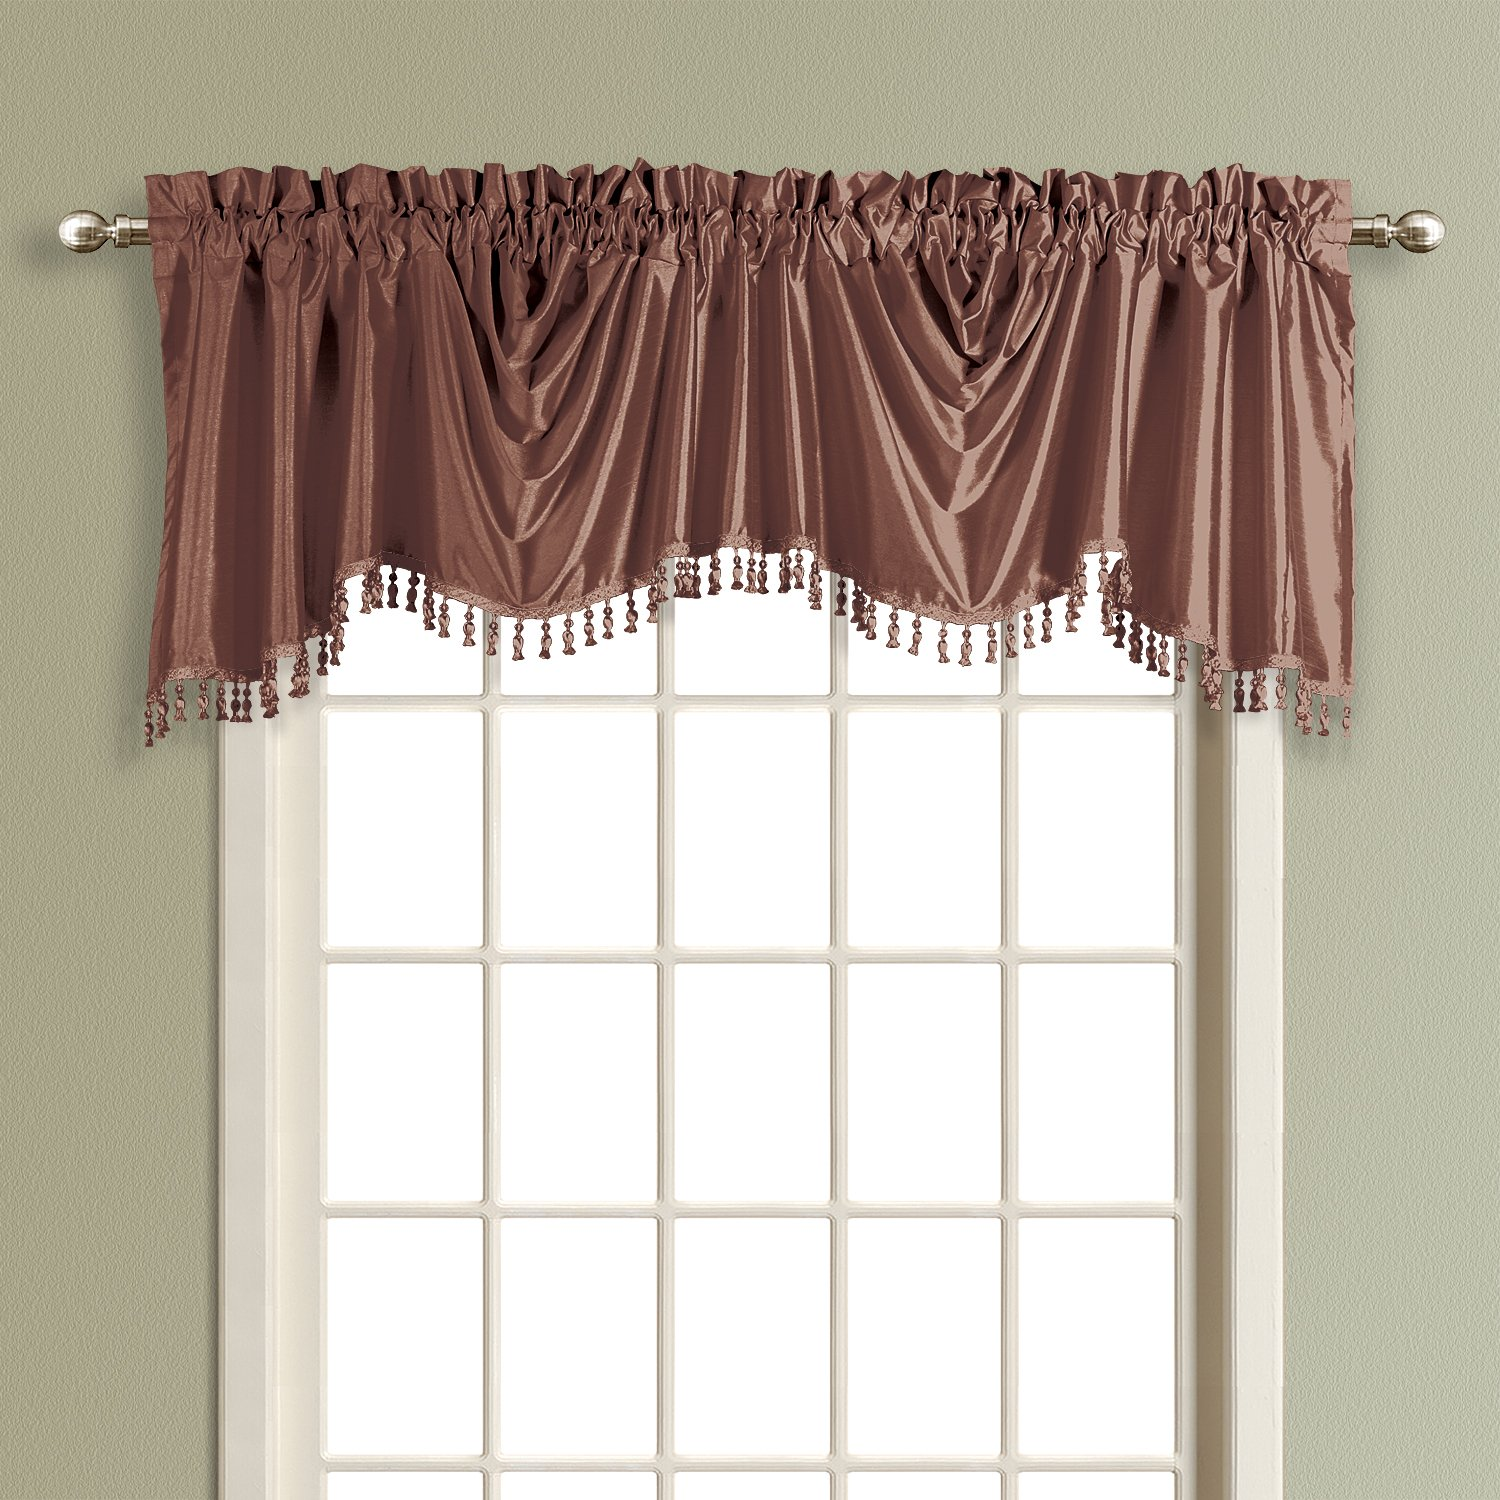 prod p fun home natasha sears tailored window tasseled is valance decorating whole your ascot qlt wid spin with hei